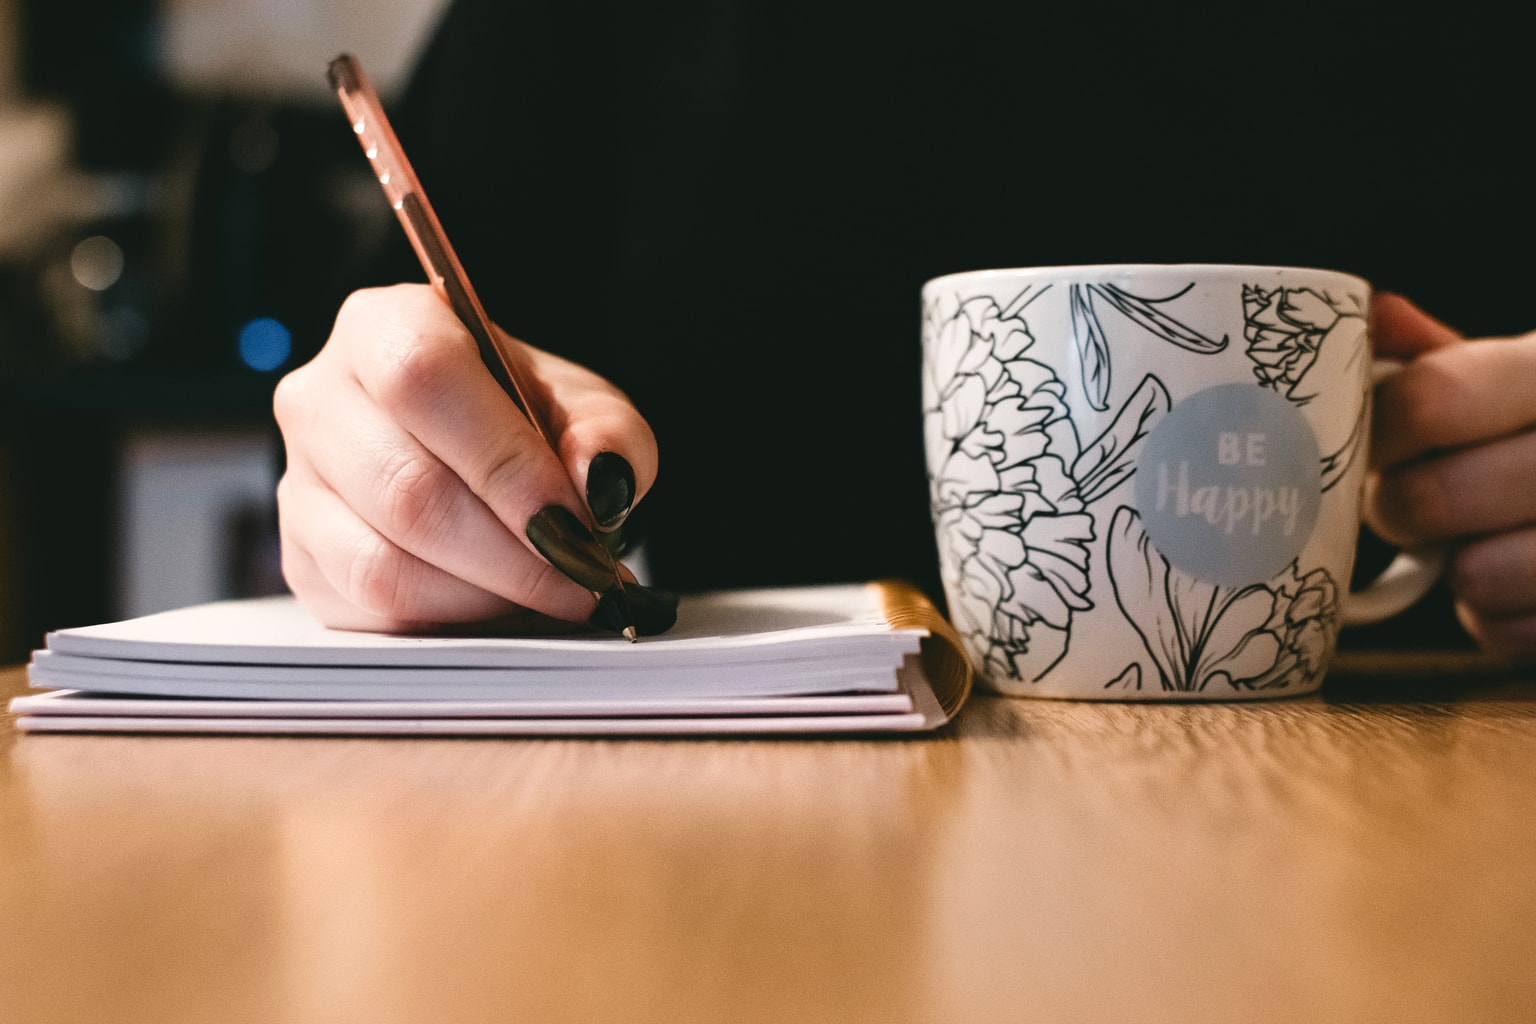 journaling-with-a-mug-that-has-a-be-happy-motto